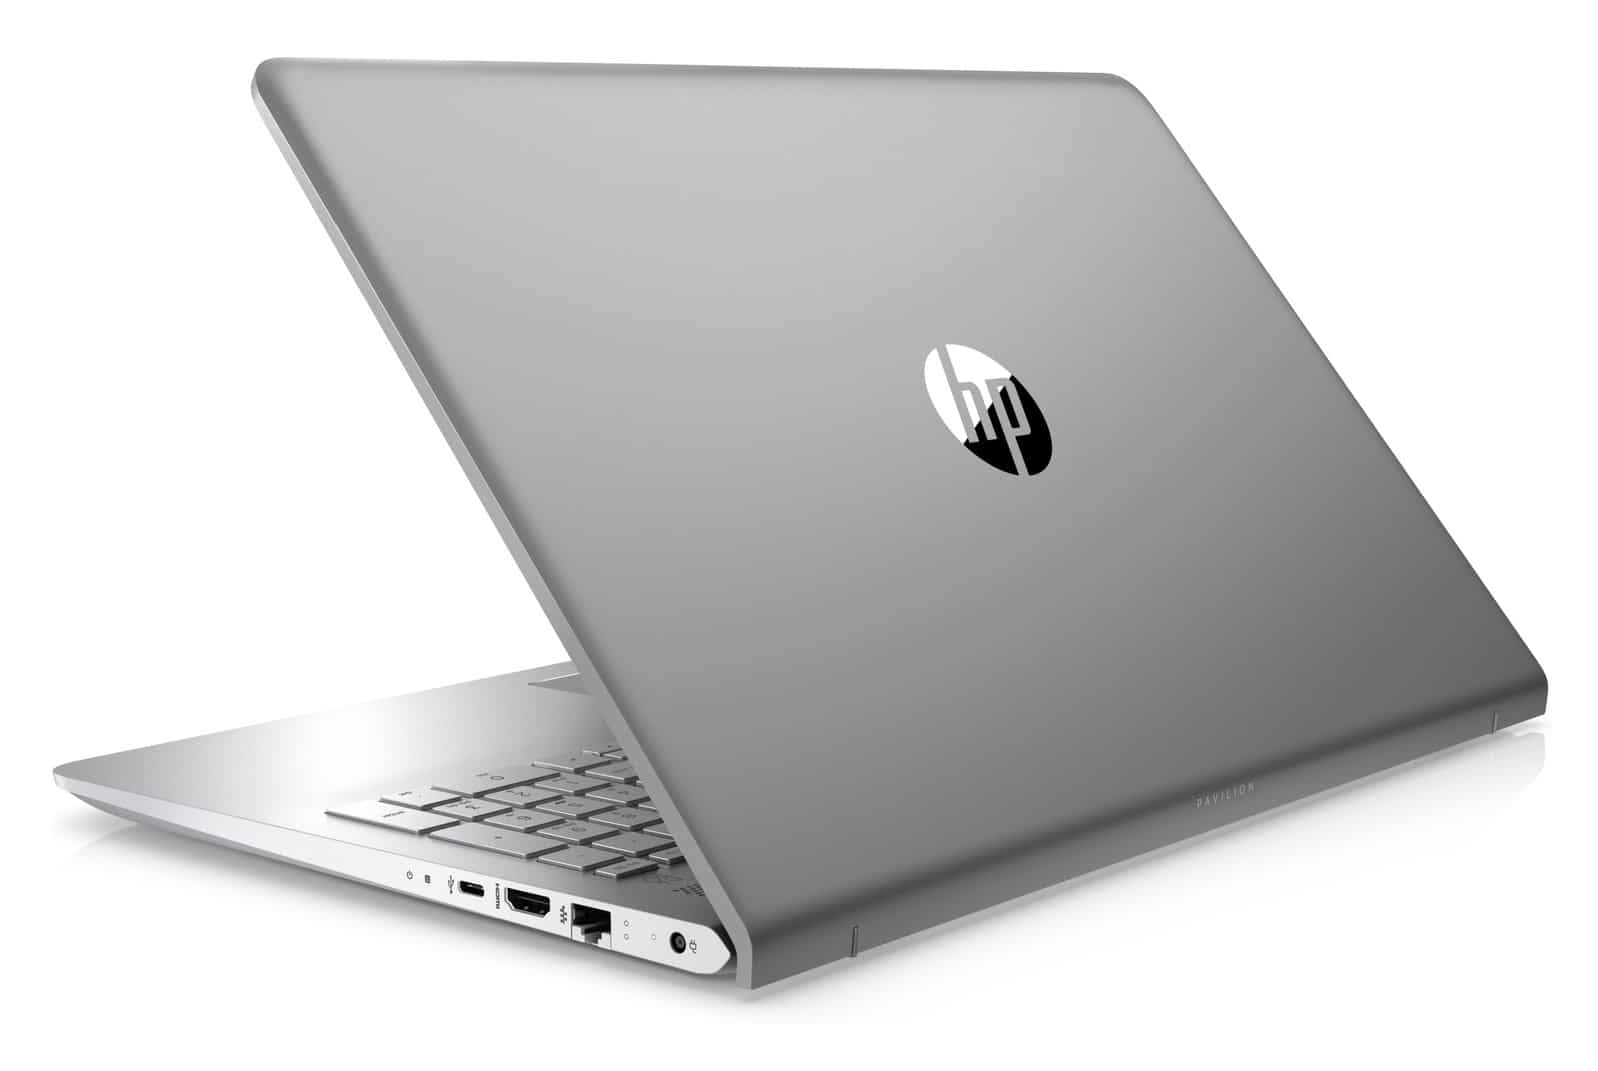 HP Pavilion 15-cc500nf, ultrabook 15 pouces Full HD i3 Kaby SSD+HDD à 629€